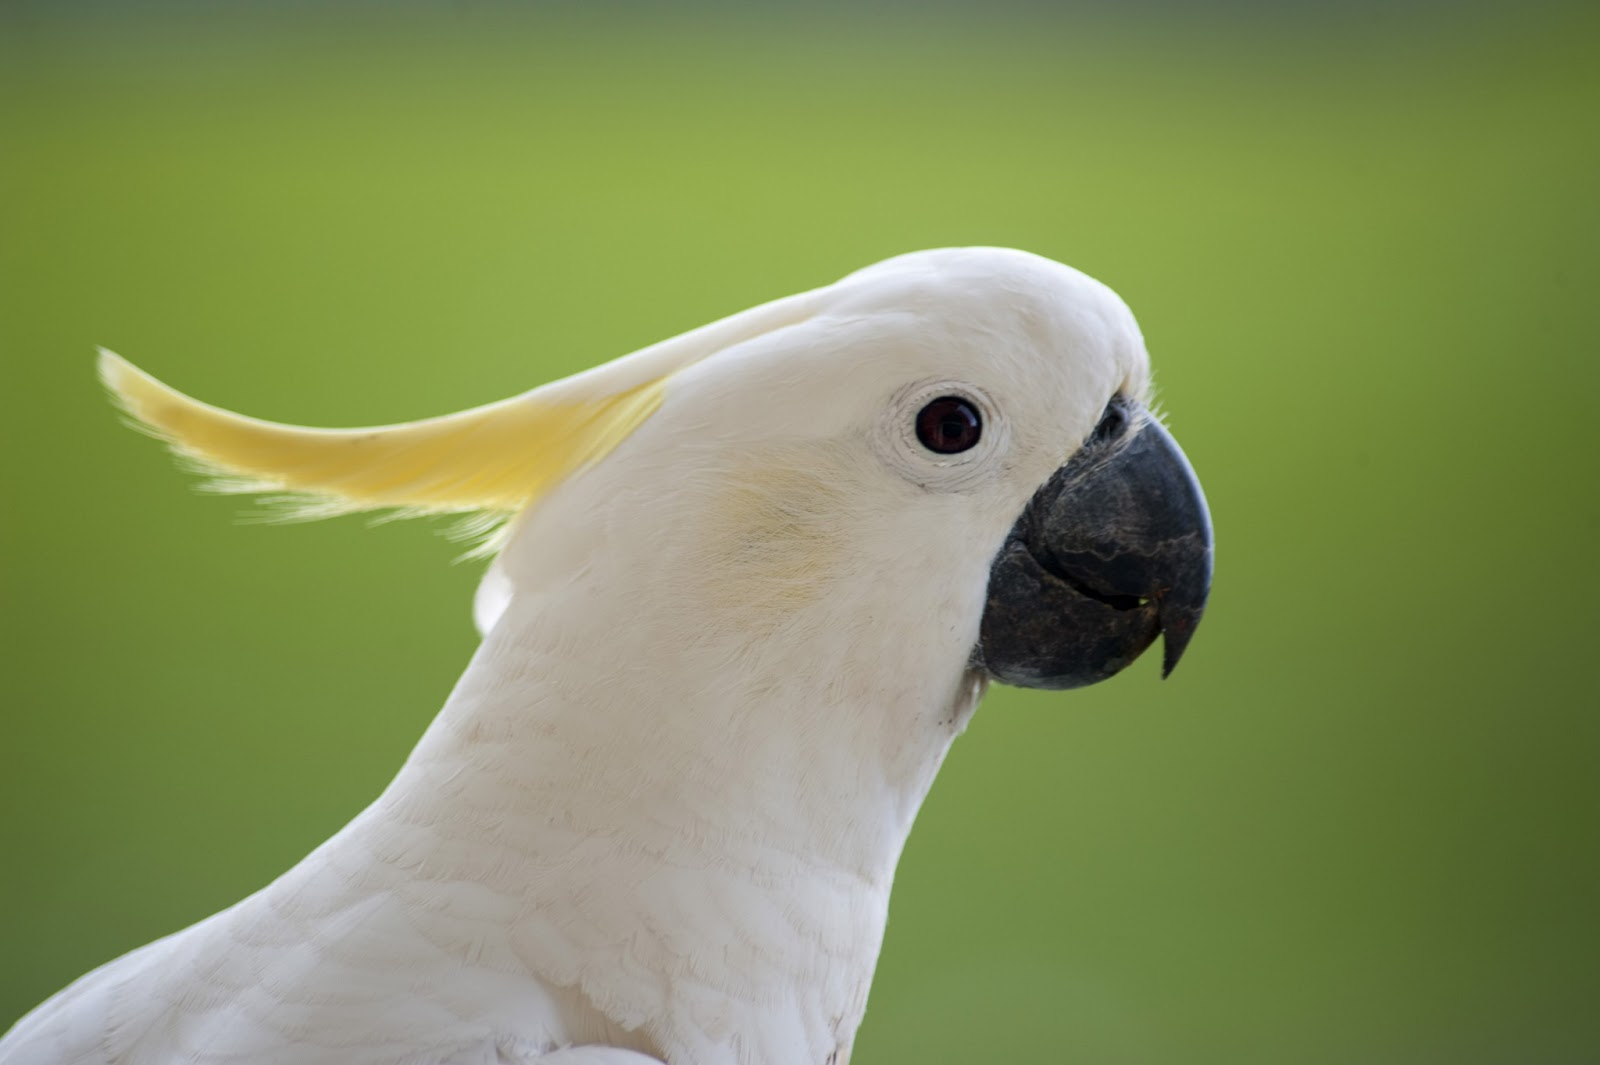 Cockatoo Photos 17